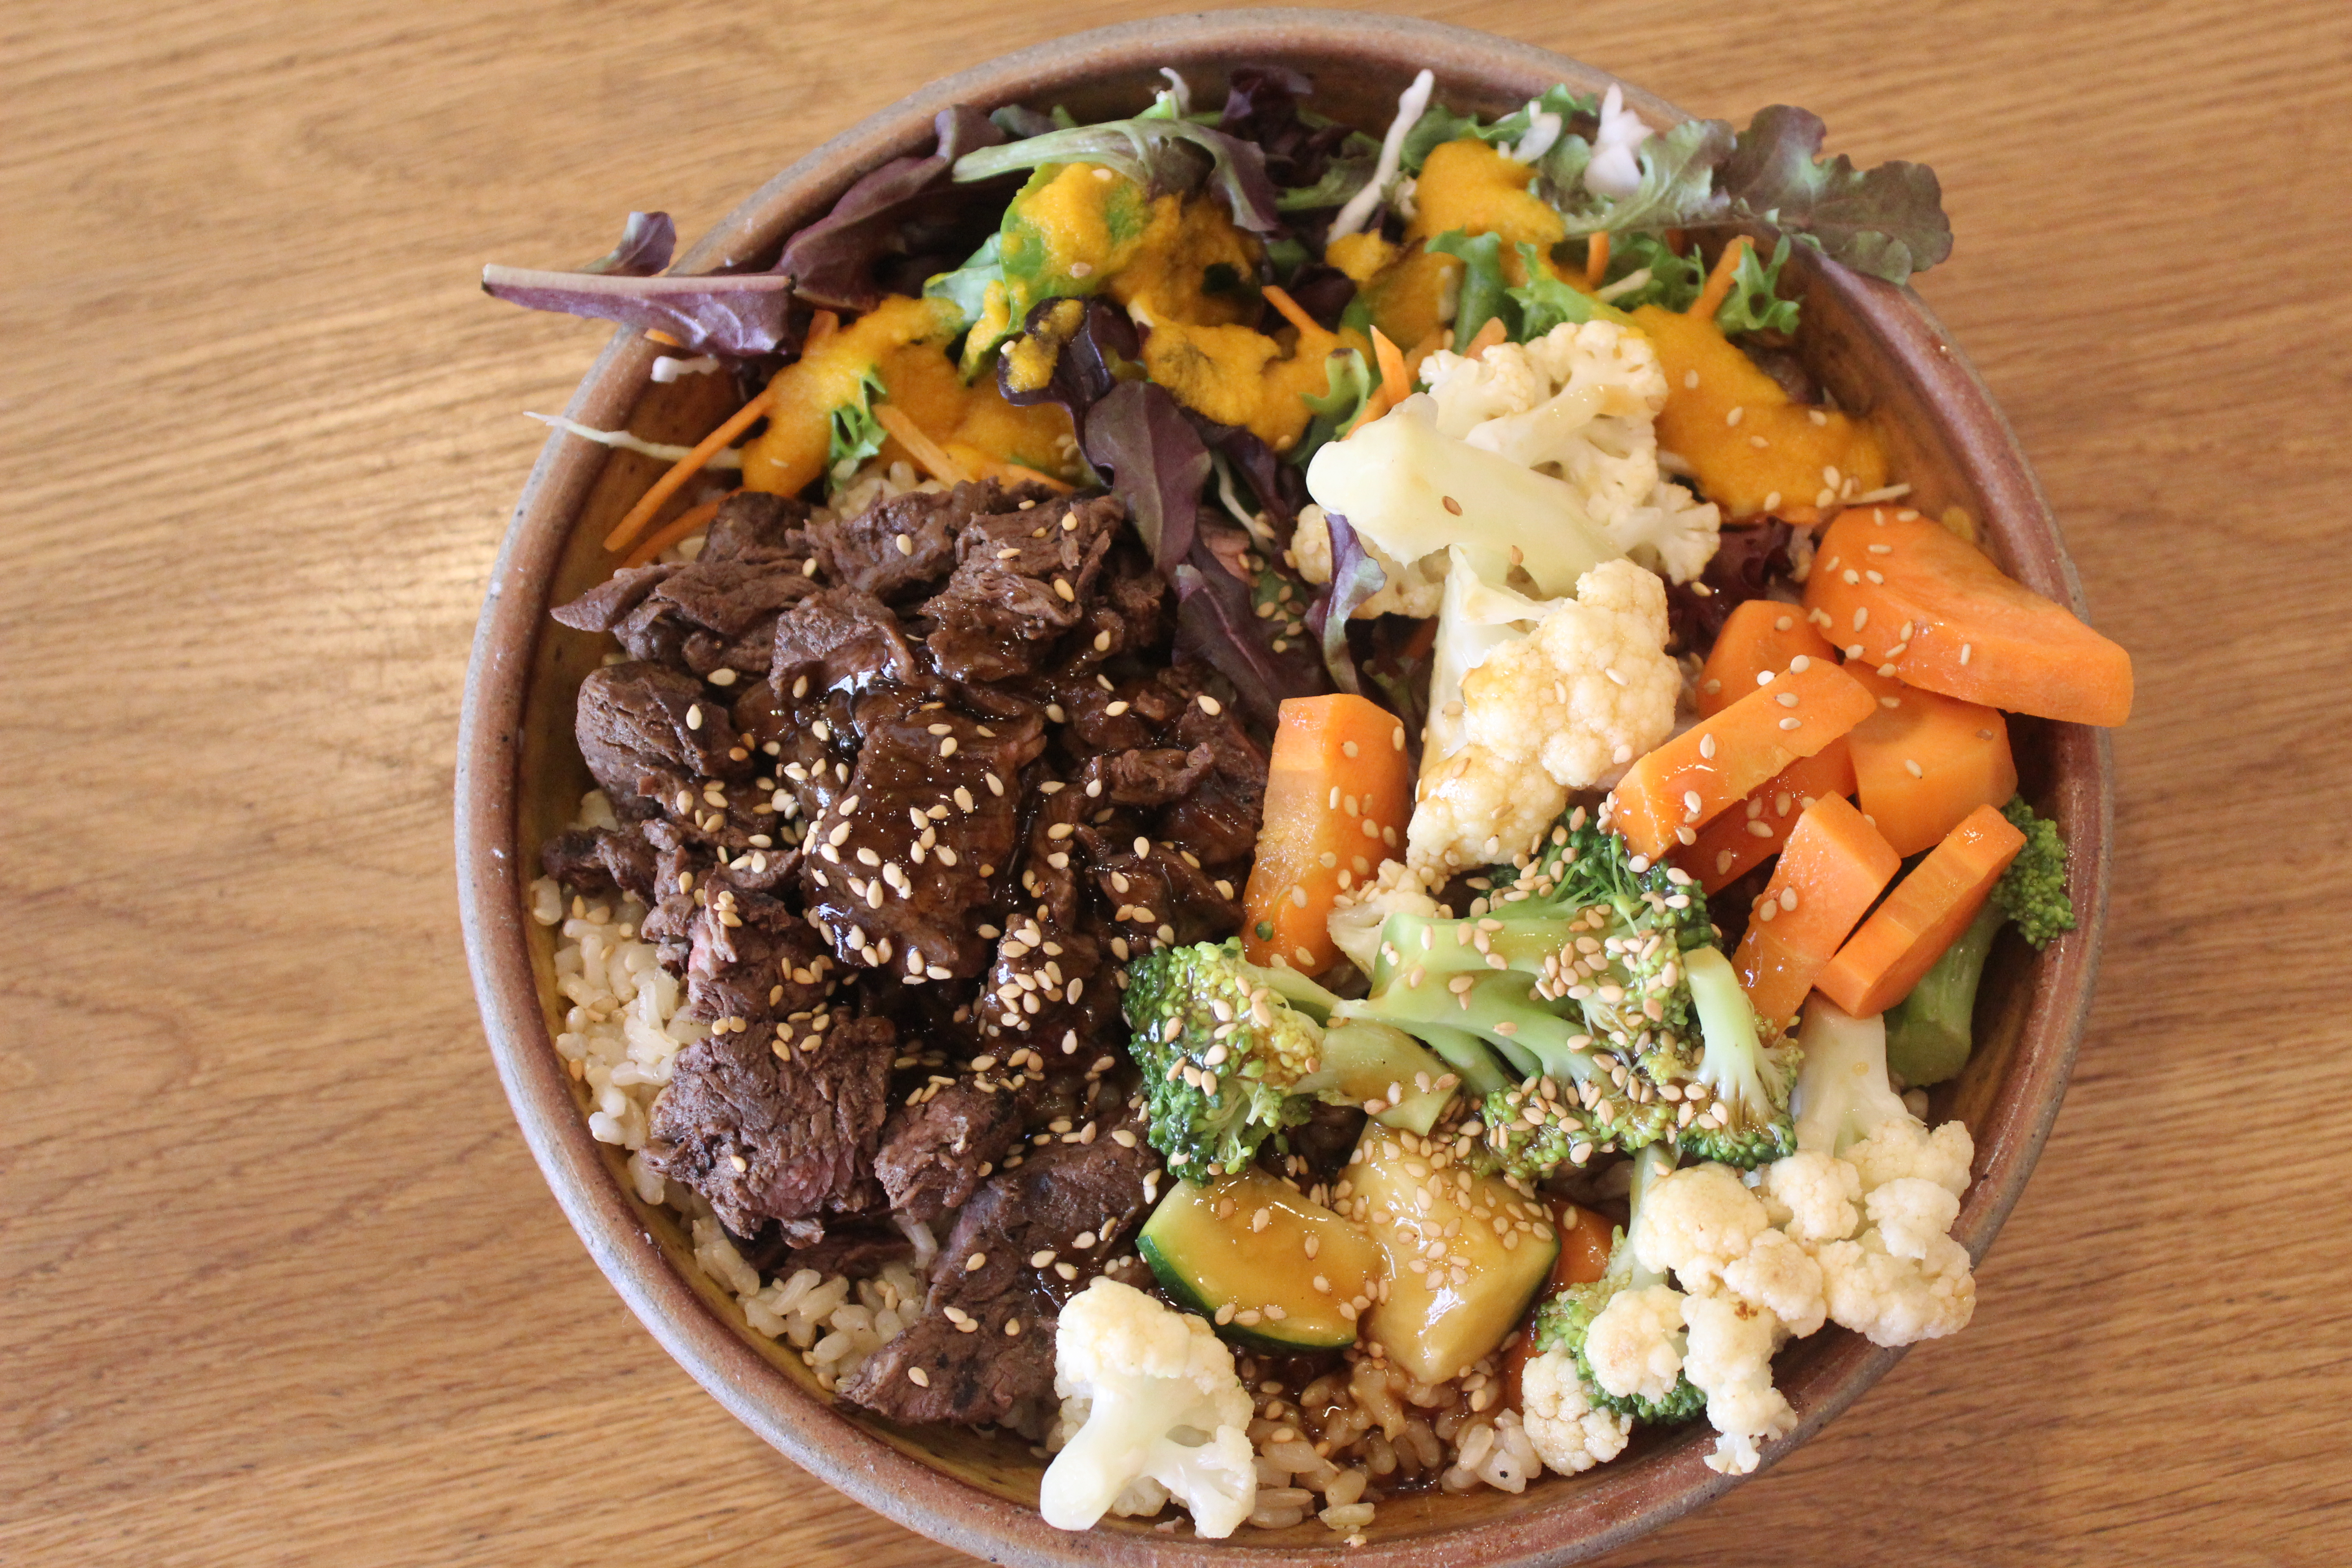 Steak and Vegetable Combo